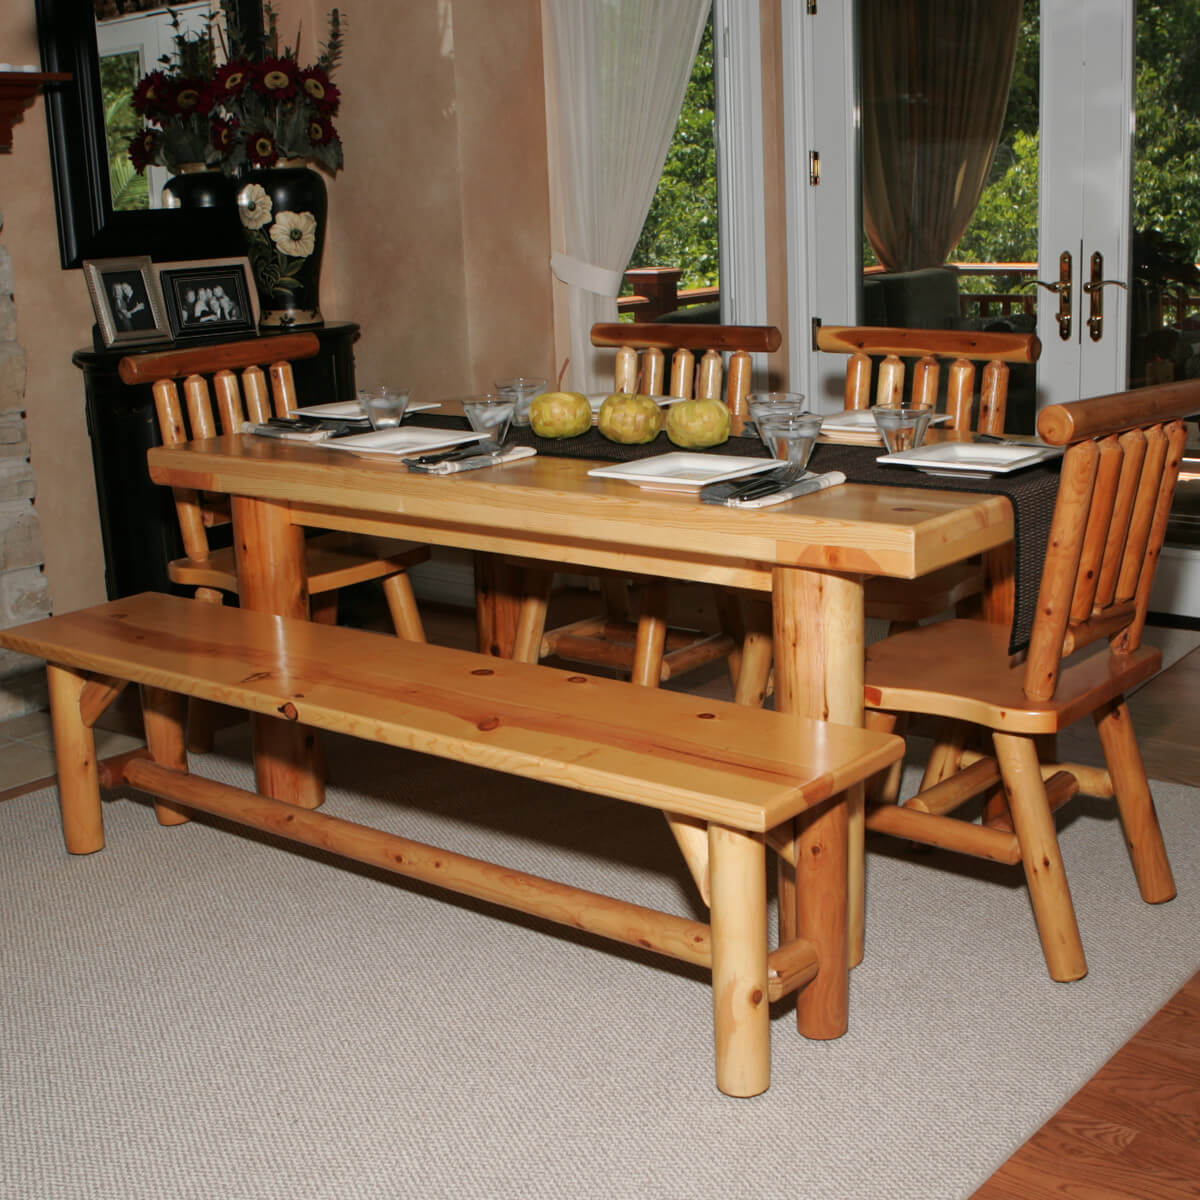 Table And Chairs Dining Room Plans 26 Big & Small Dining Room Sets With Bench Seating